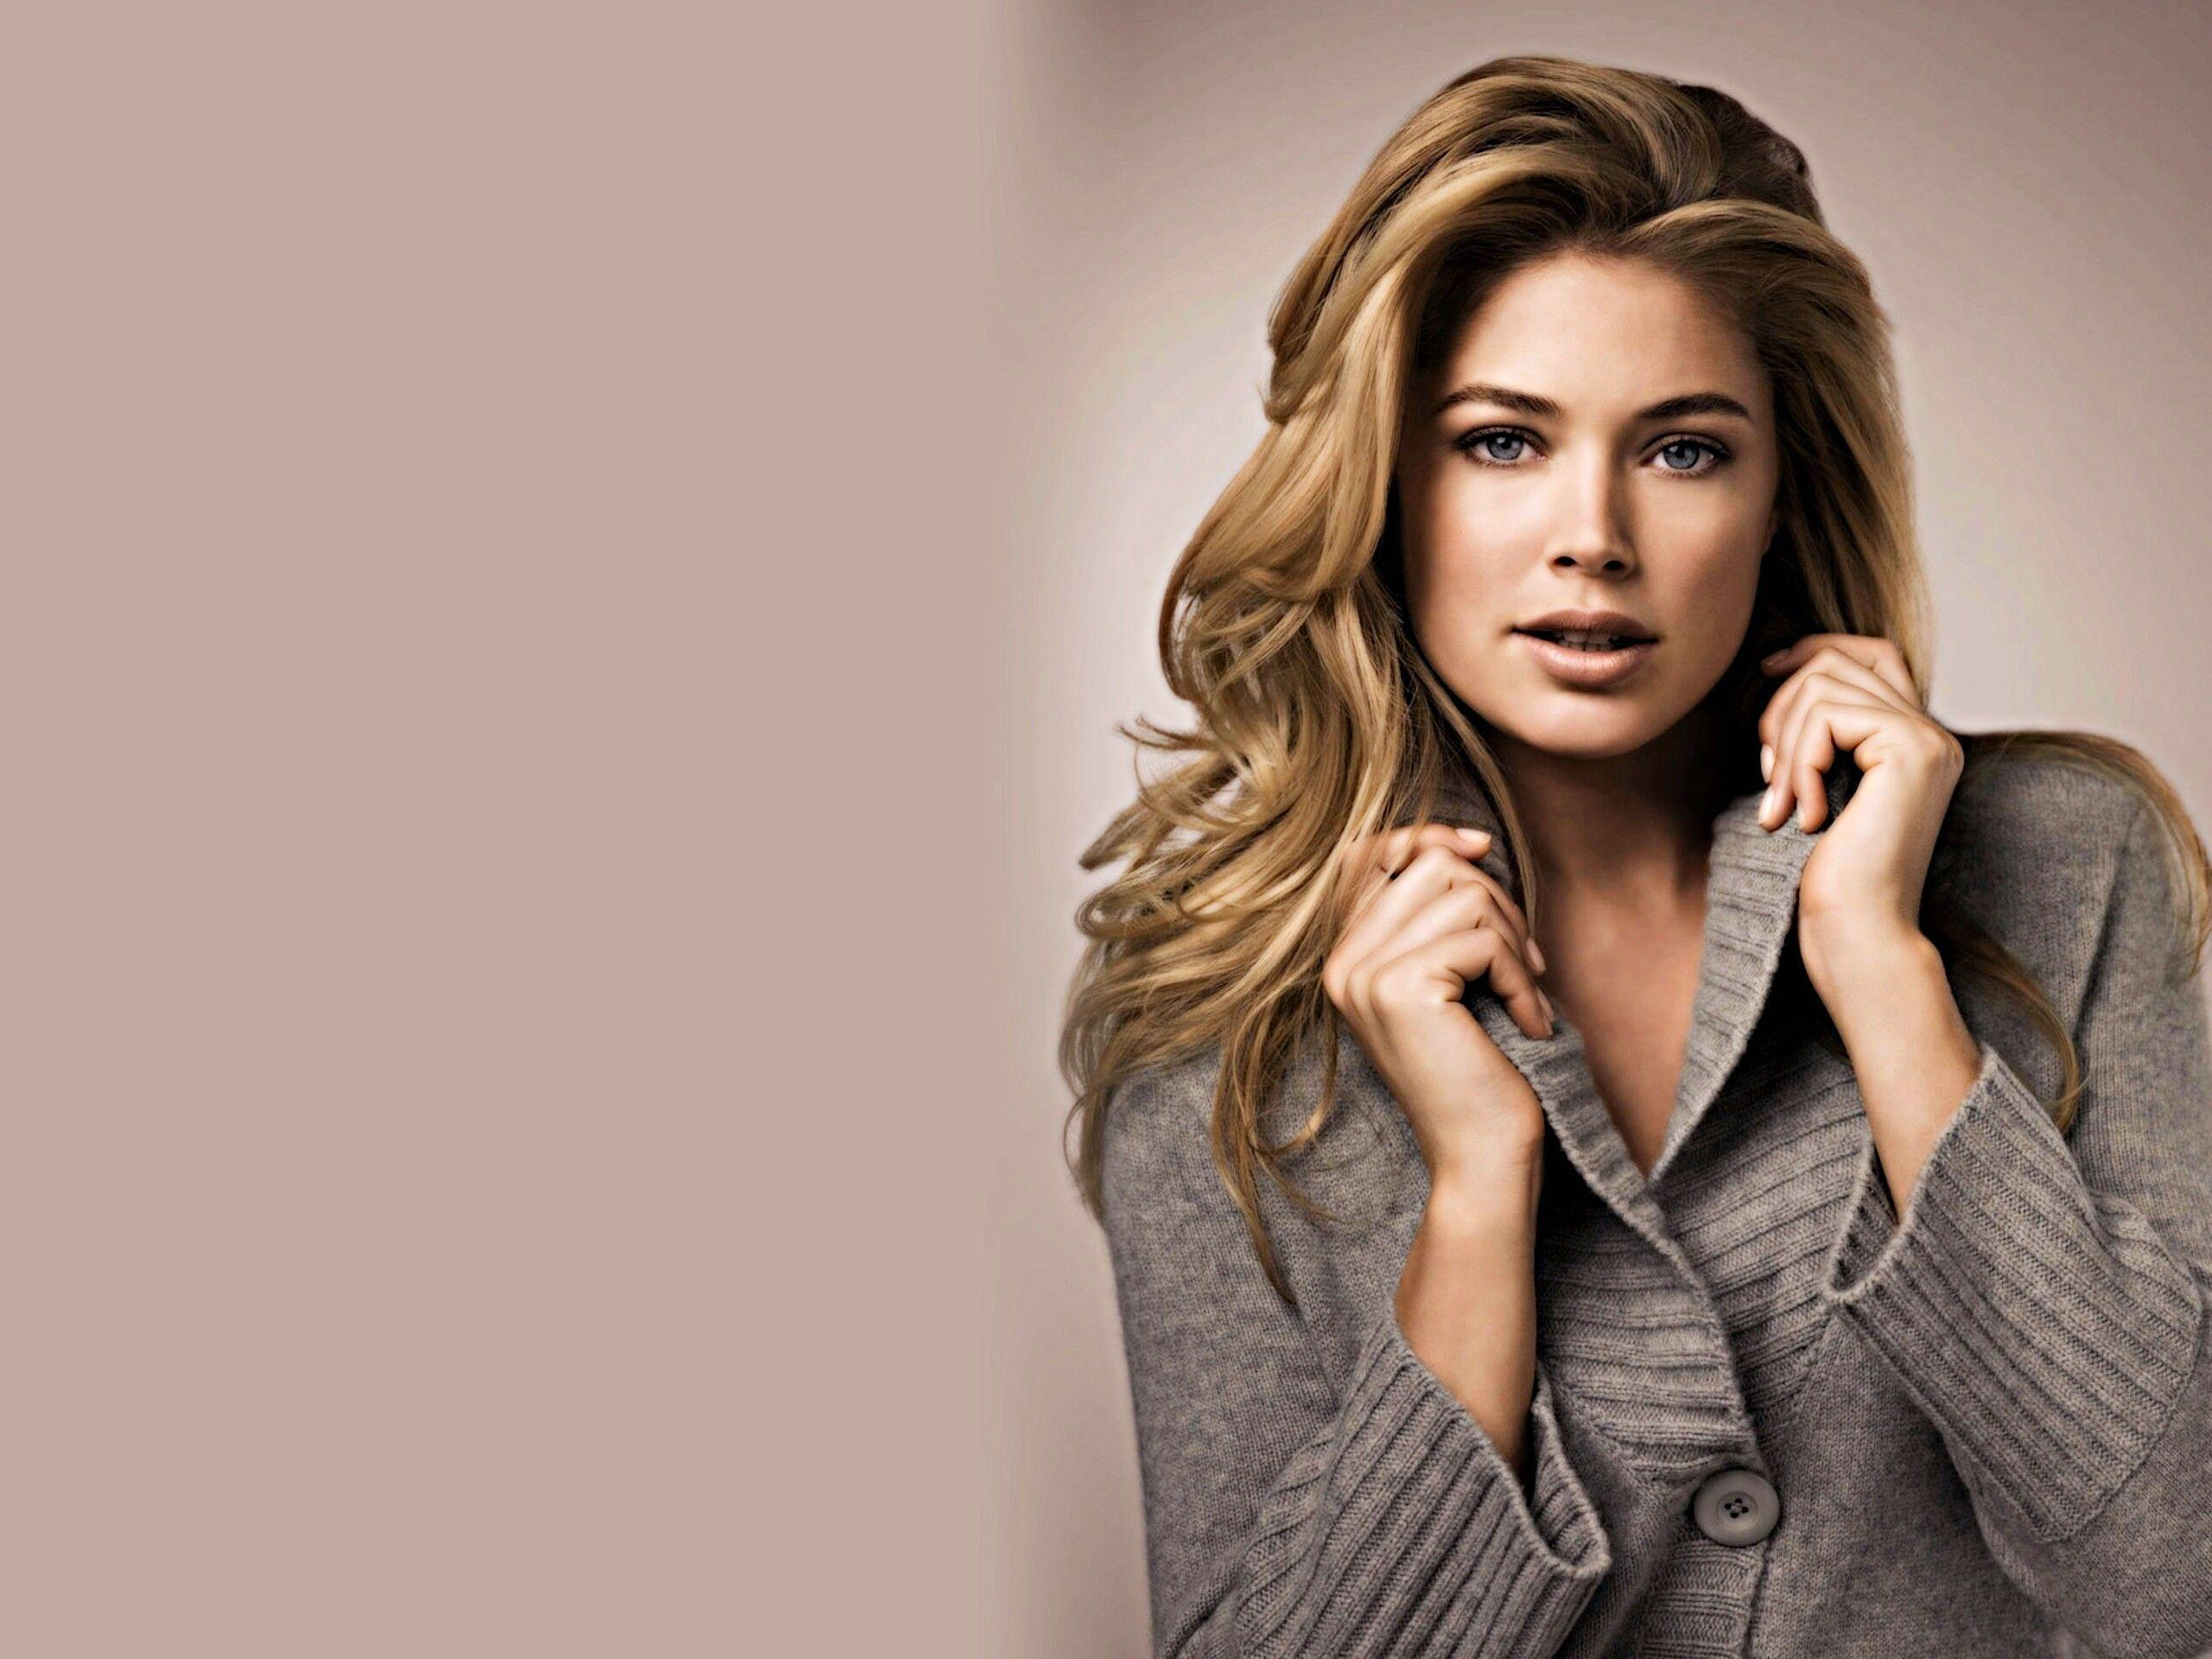 doutzen kroes wallpaper | Download HD Wallpapers